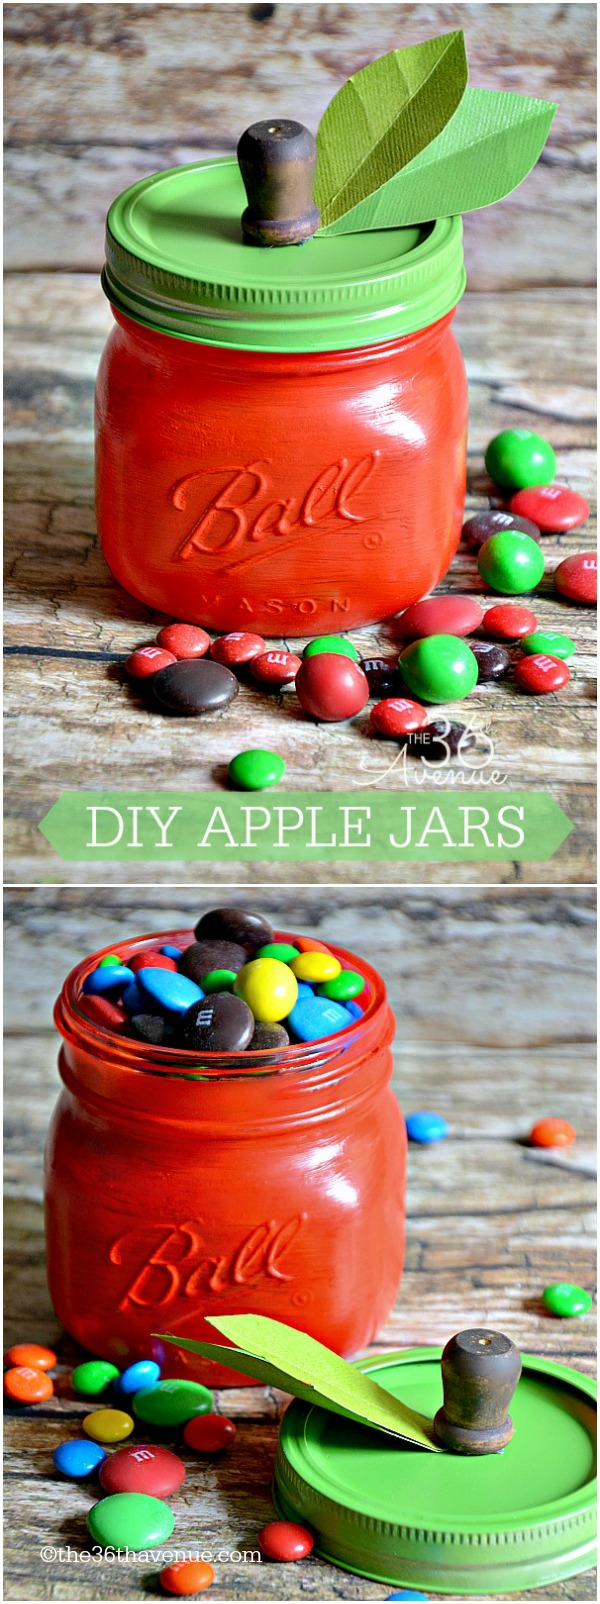 DIY Apple Jars - Free Project! - 25+apple projects and kids crafts - NoBiggie.net